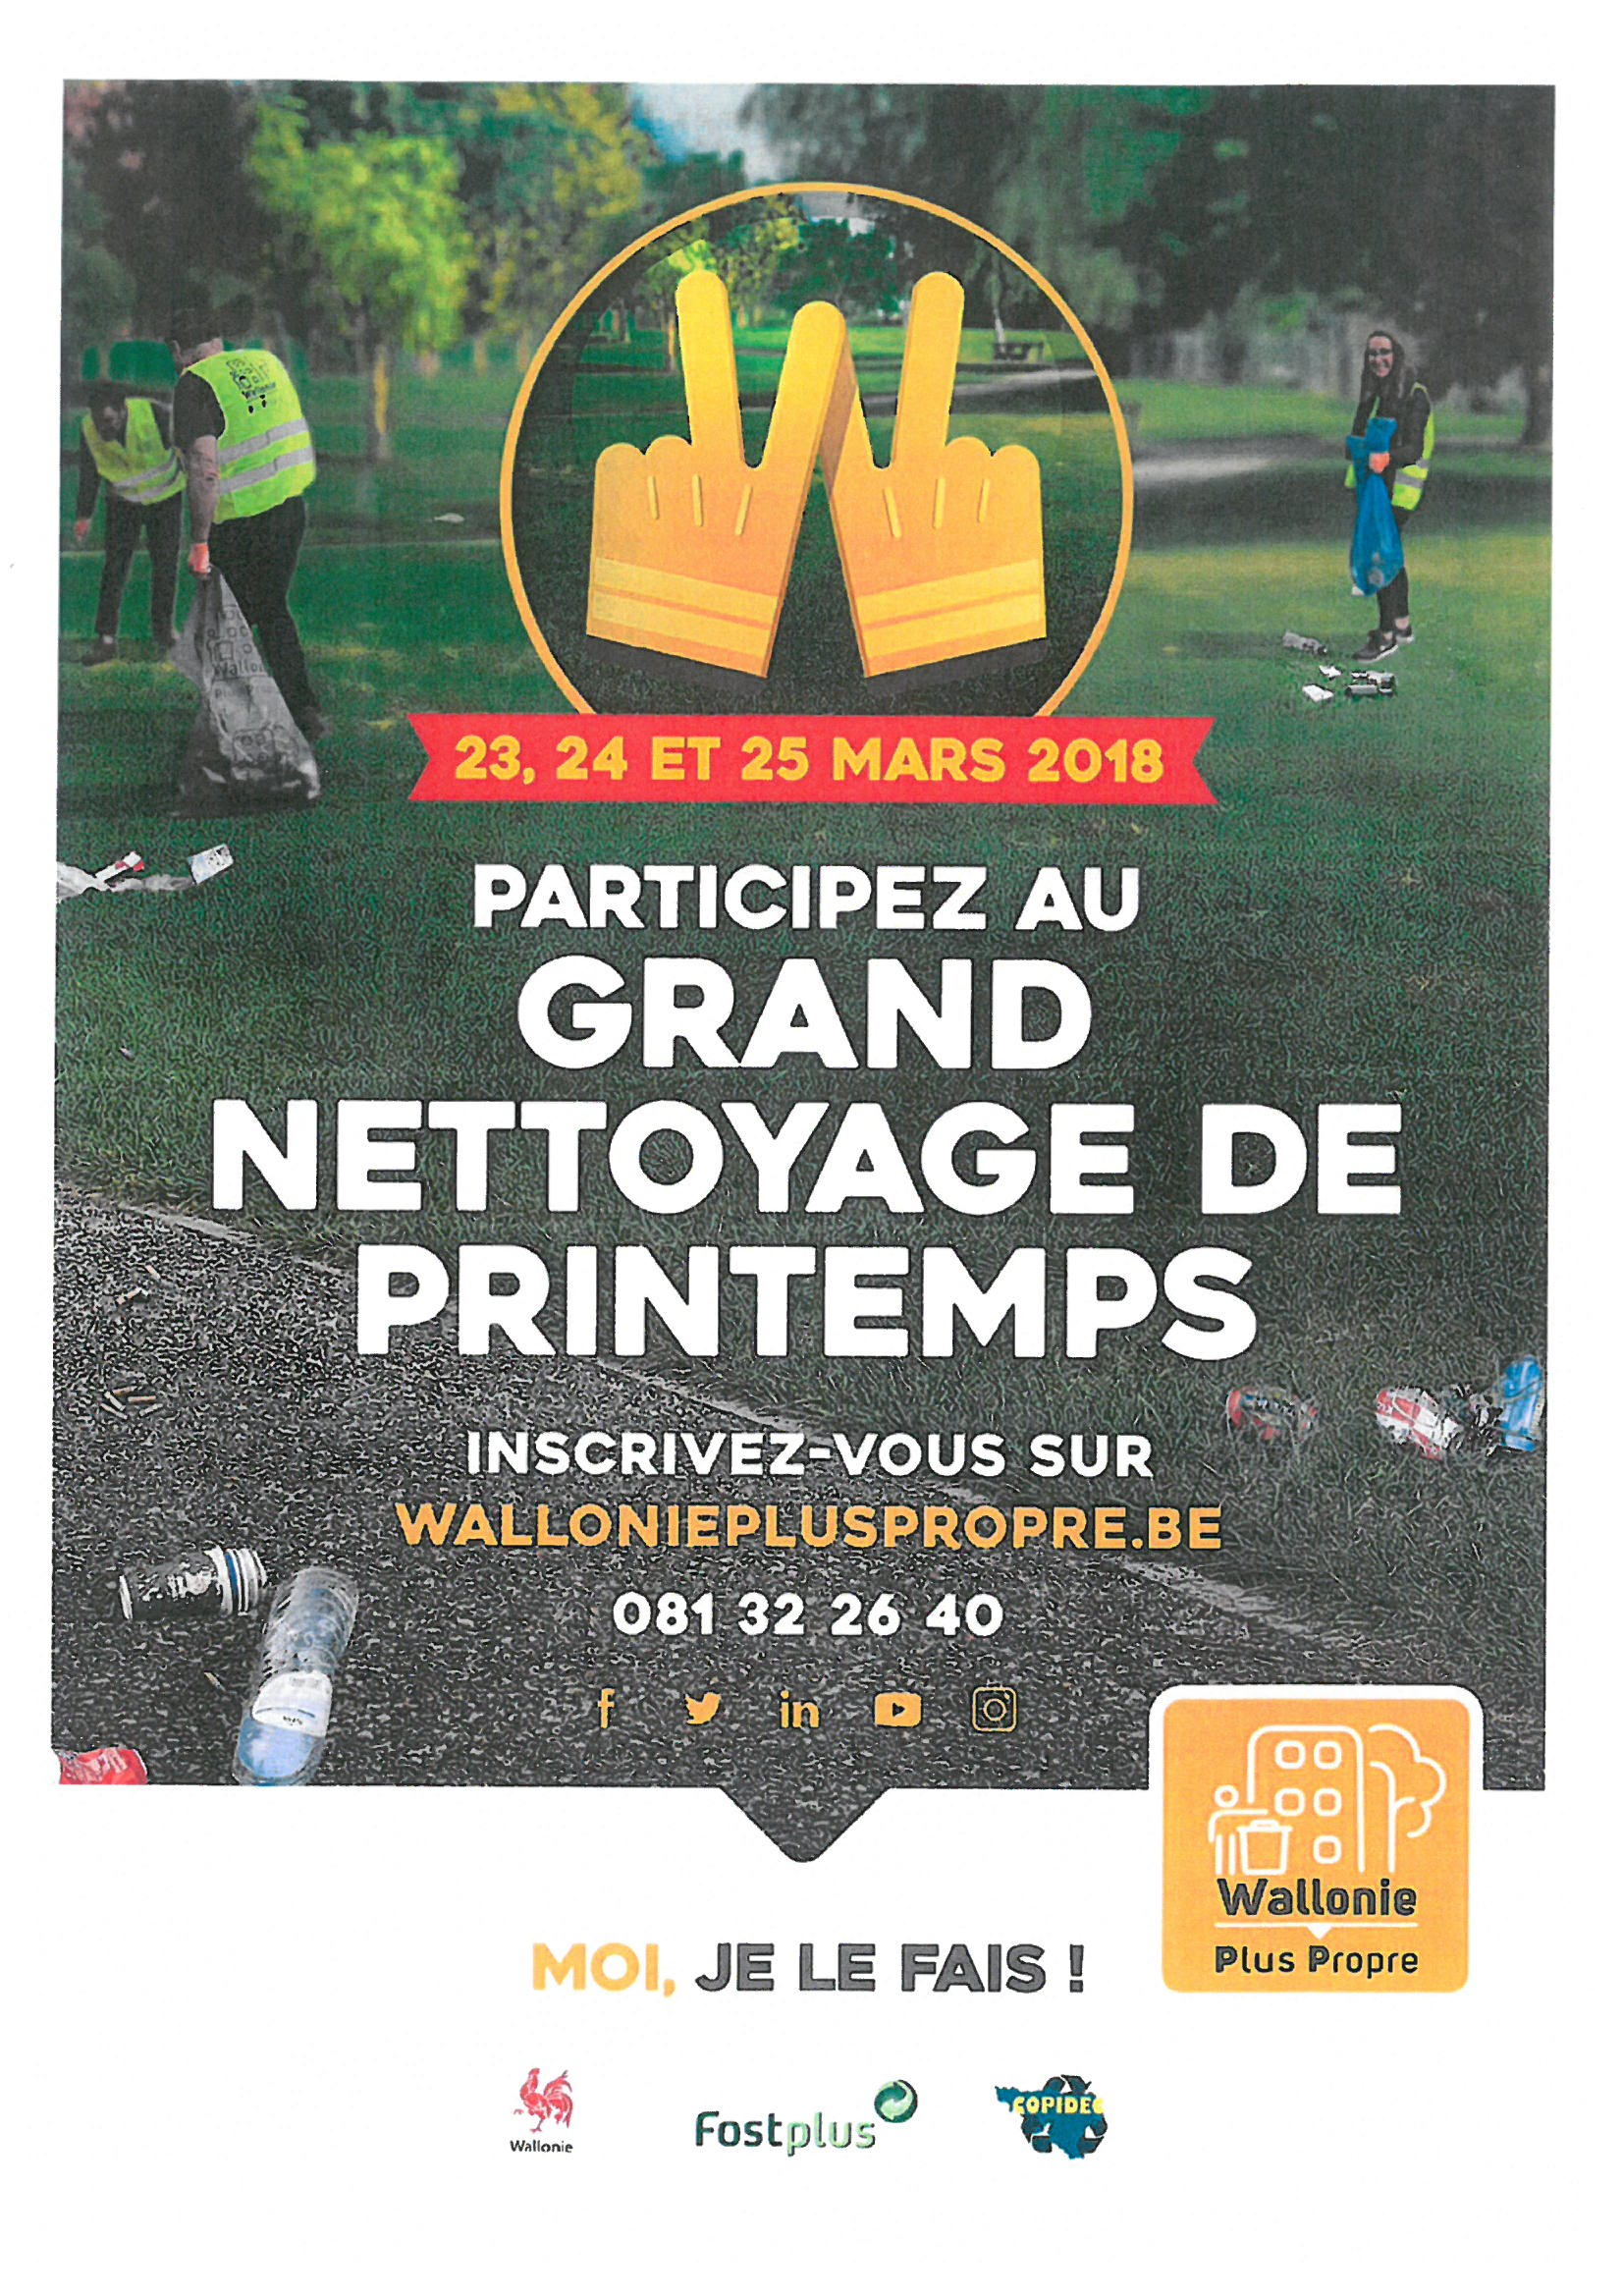 Be WAPP 2018 - Le grand nettoyage de printemps !